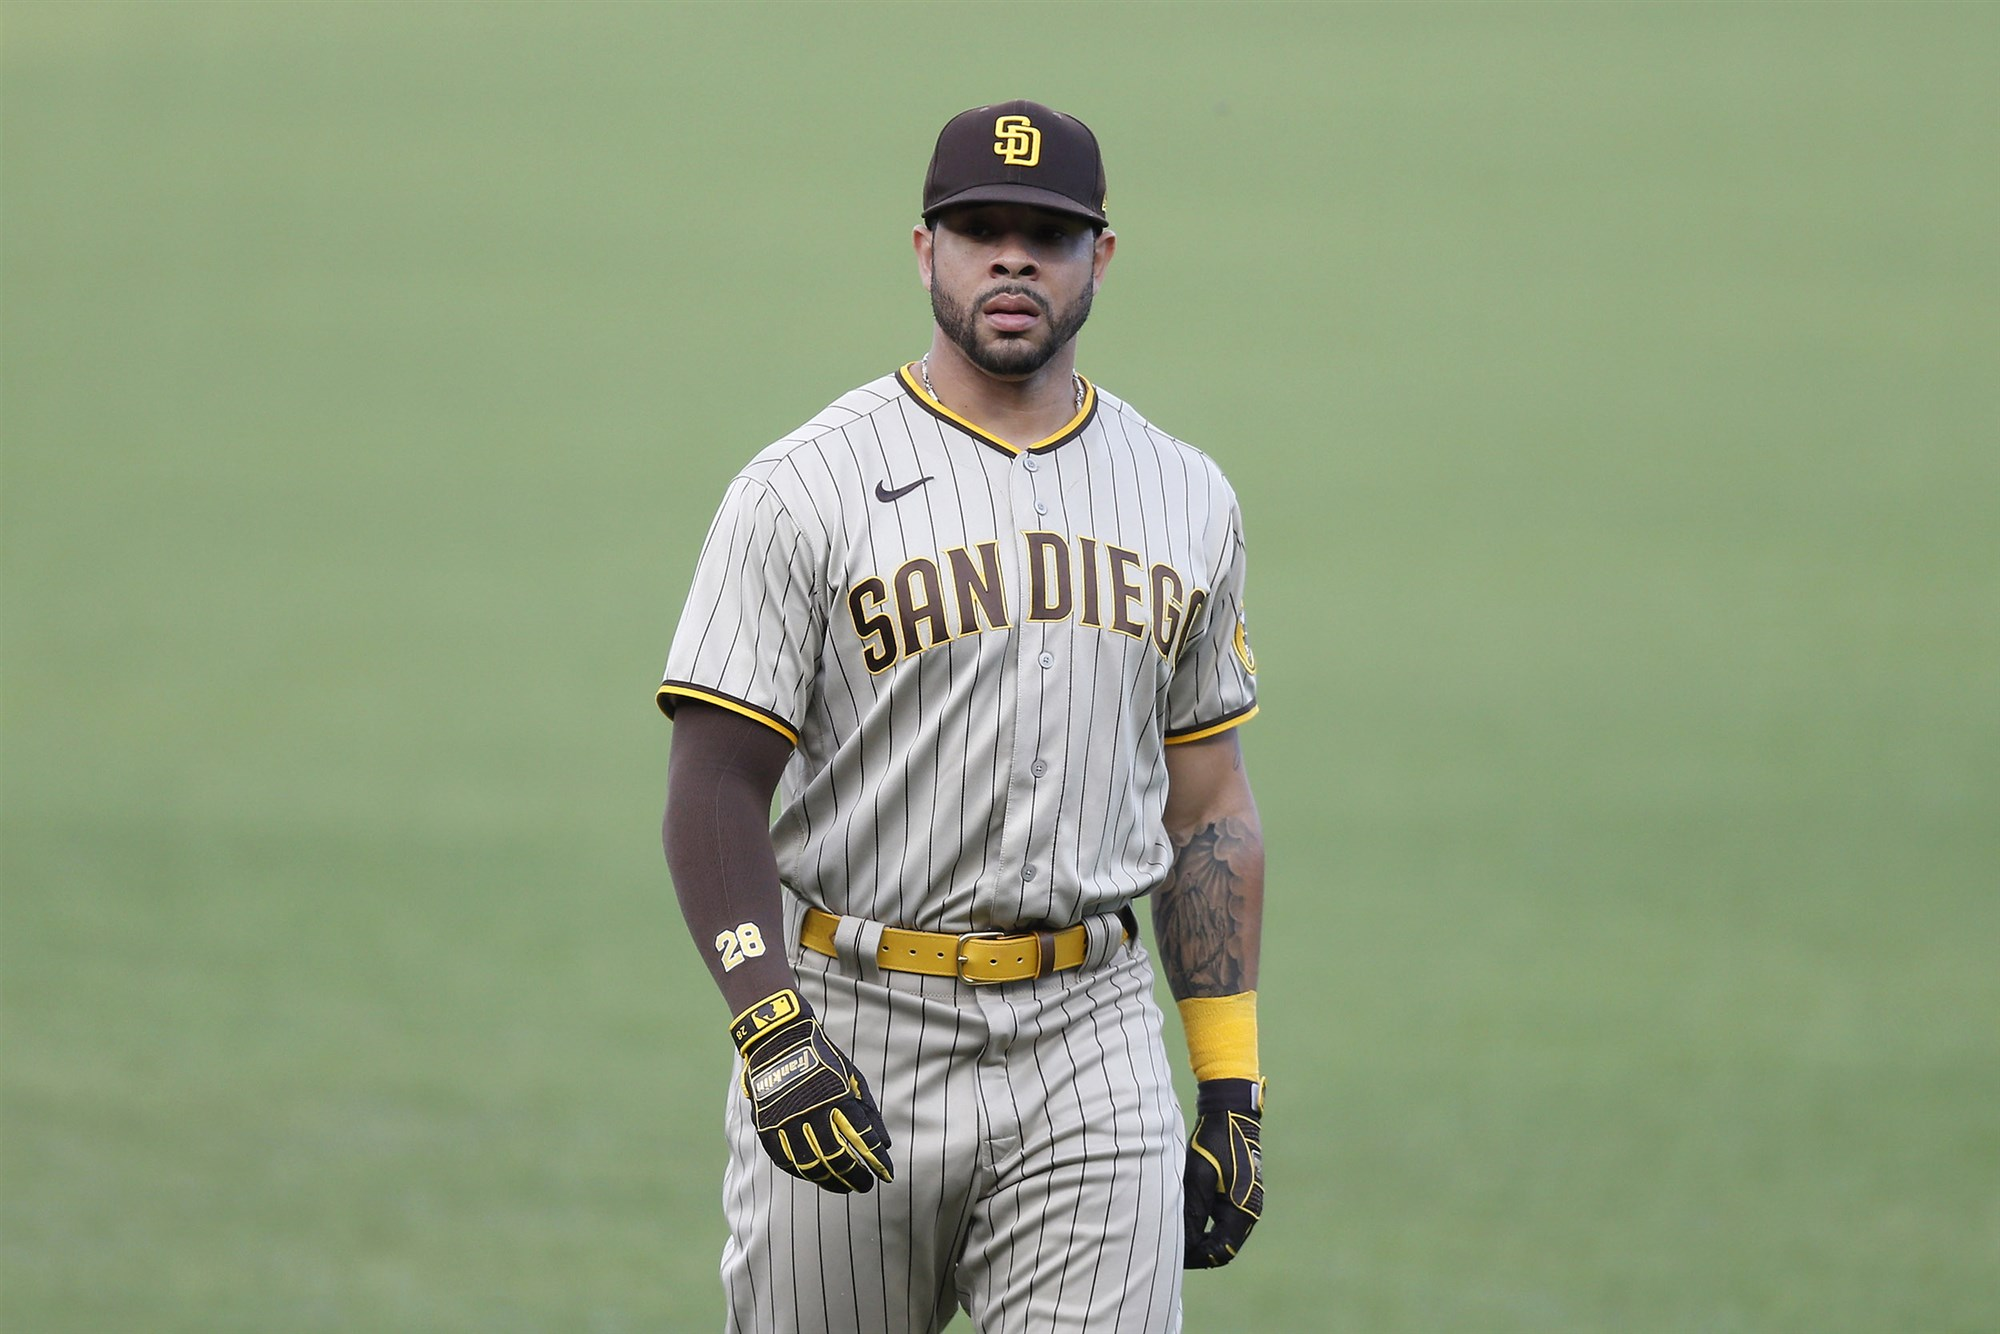 Padres outfielder Tommy Pham stabbed outside strip club